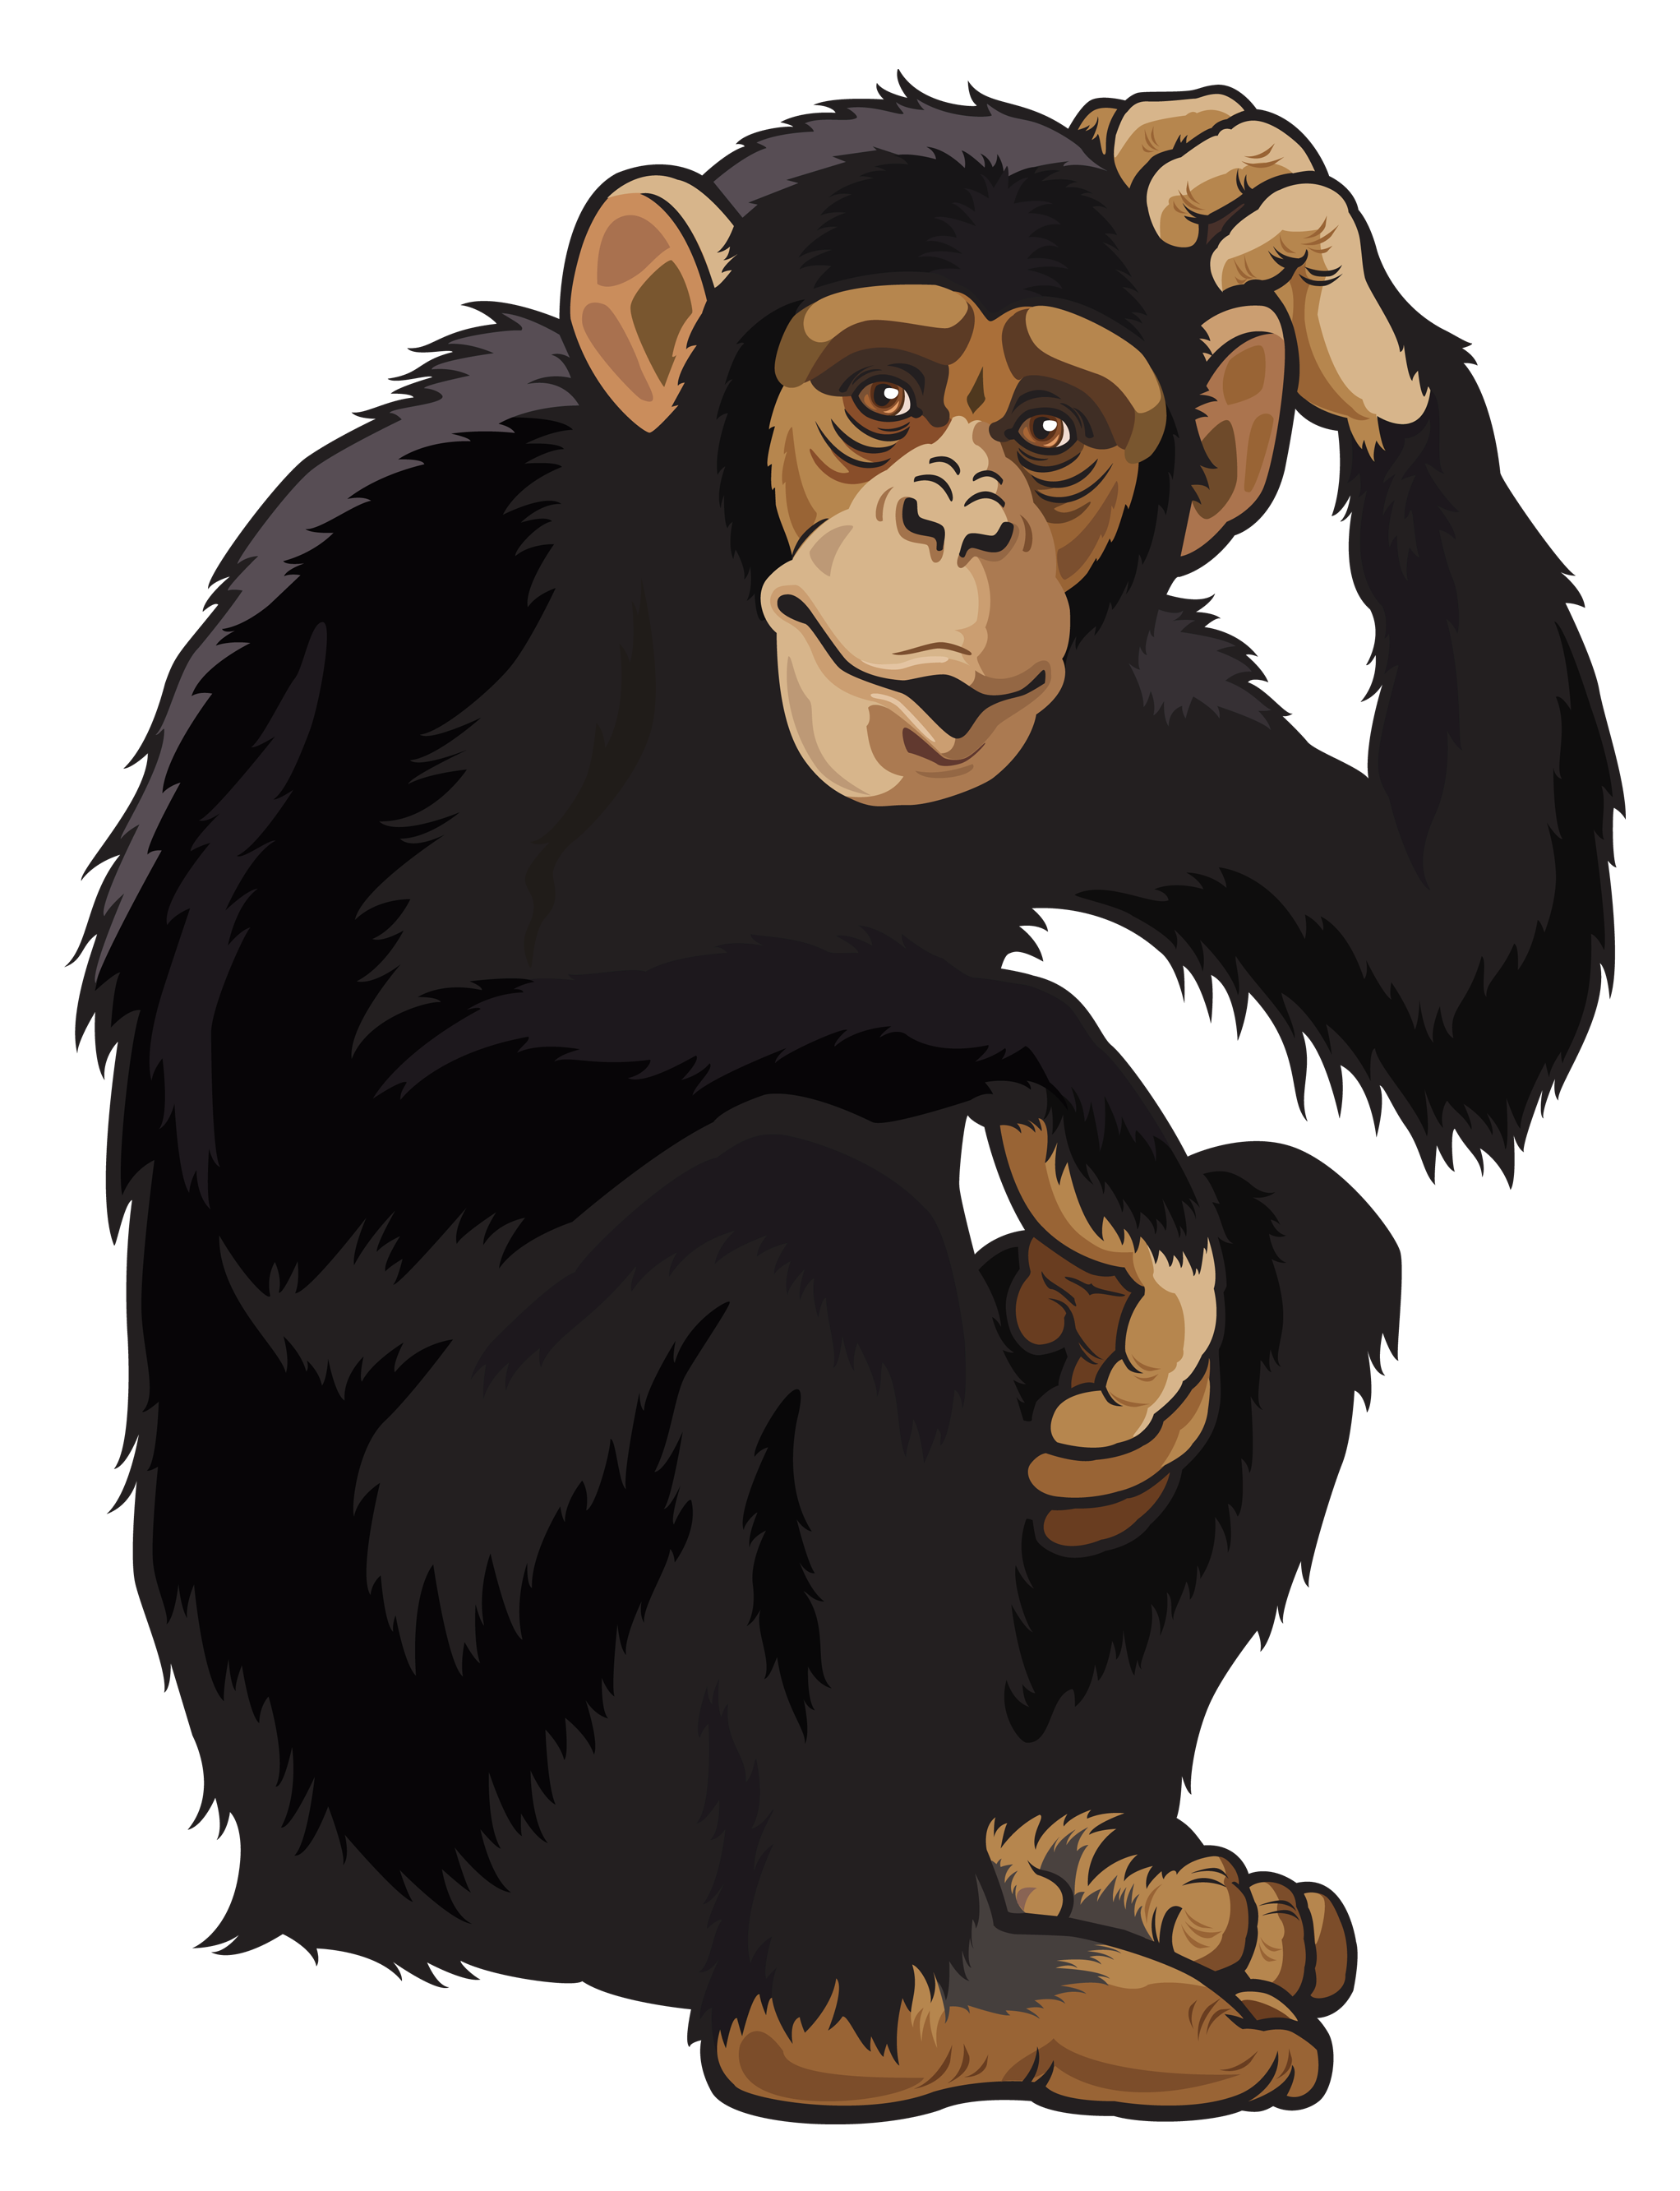 graphic black and white stock Monkey png images free. Ape clipart macaque